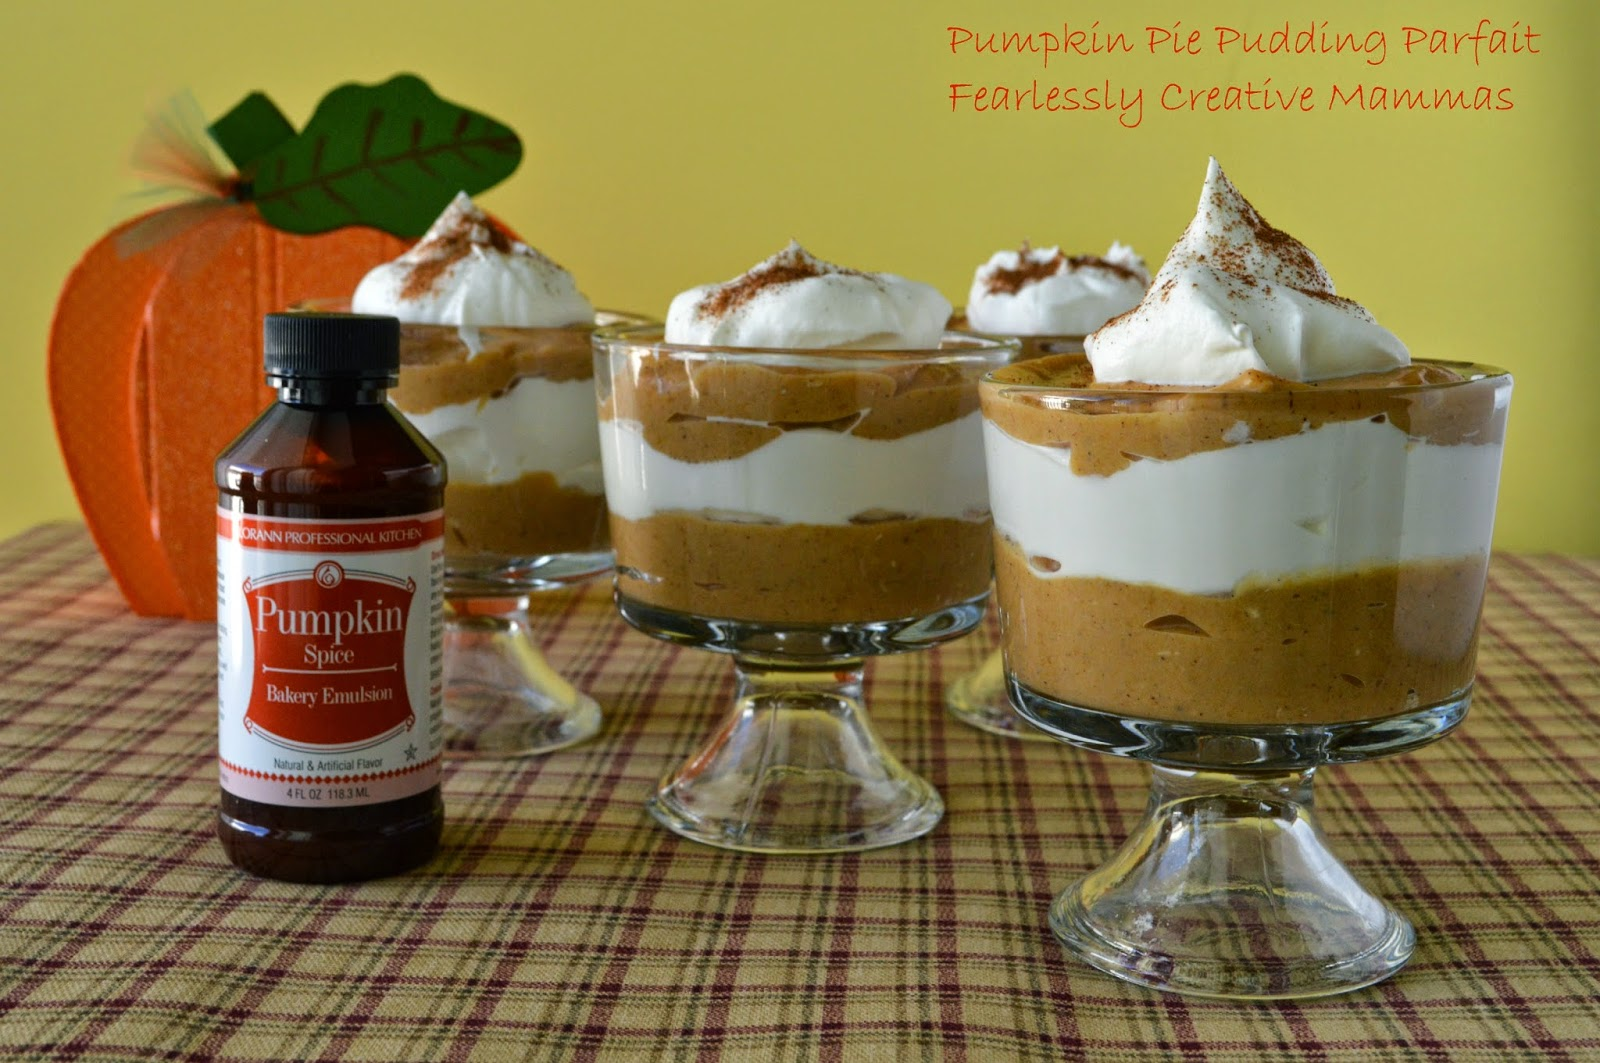 Pumpkin Pie Pudding Parfait #LorAnn